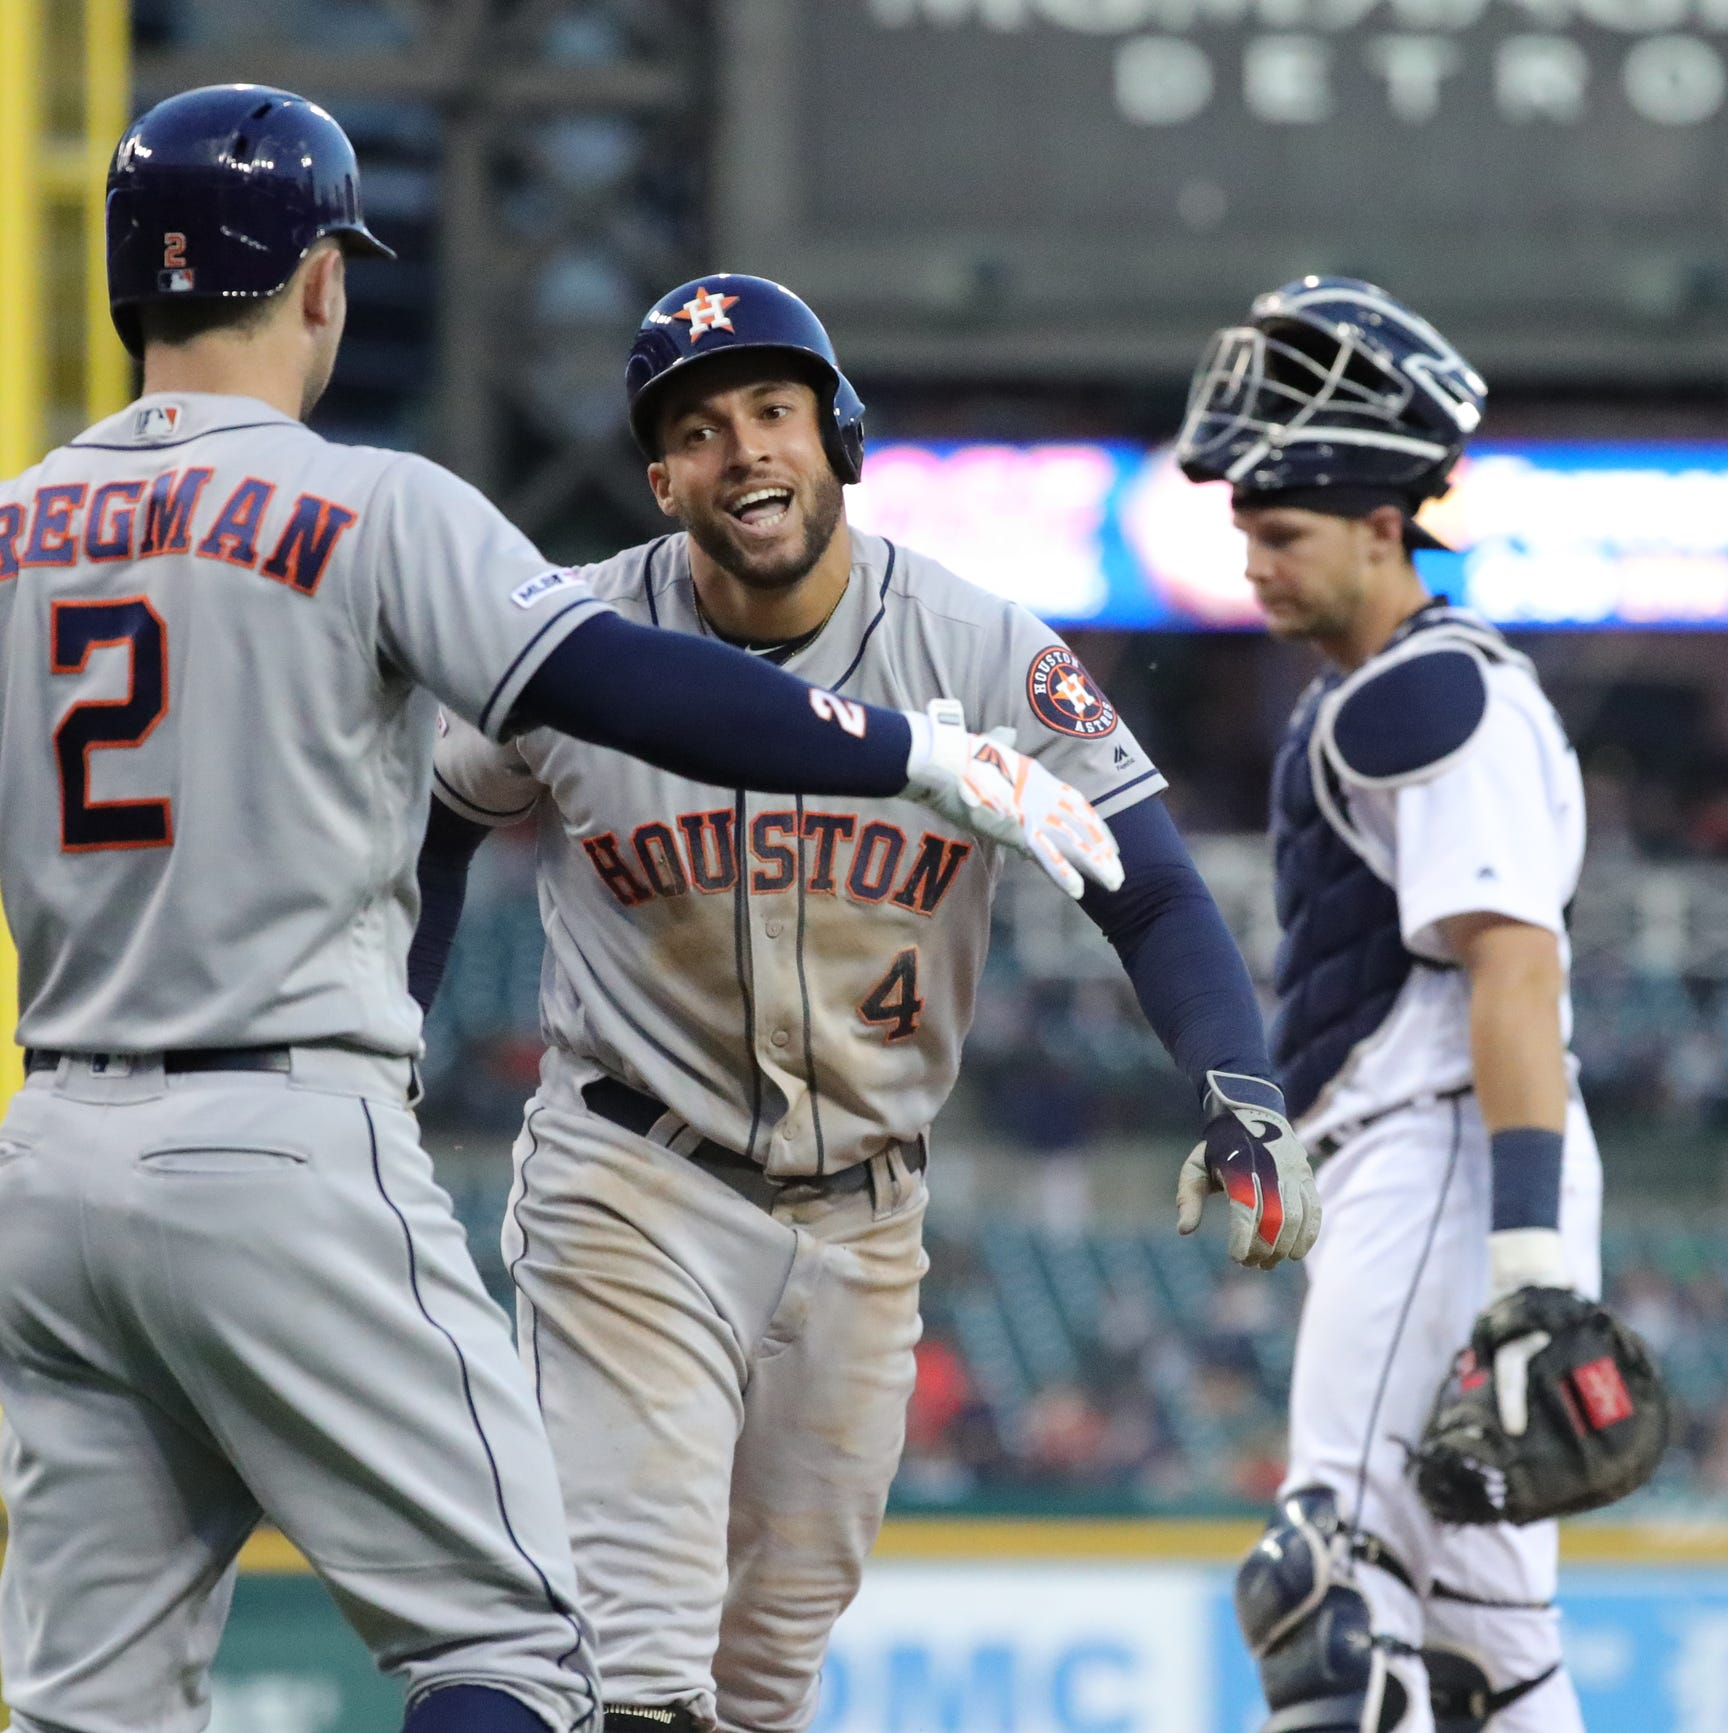 Pitching depth plaguing Detroit Tigers in blowout vs. Astros, 11-4